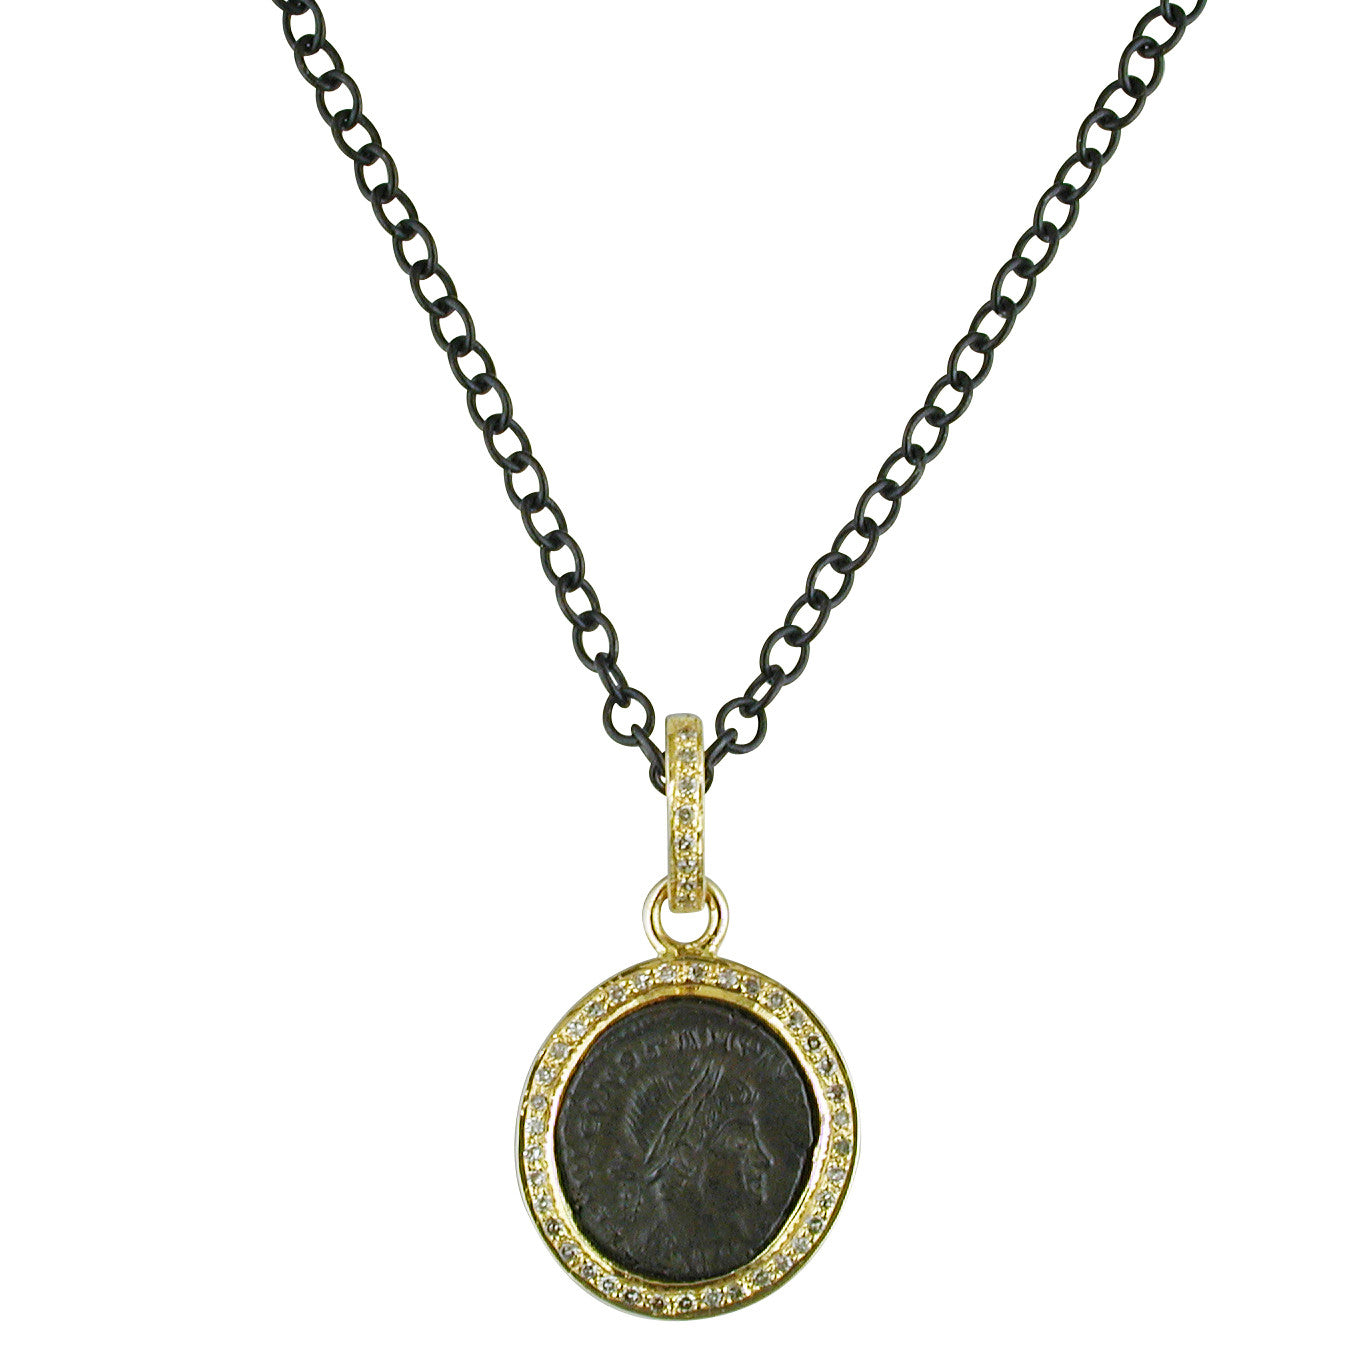 products nek necklace com roman luxury tali ethical talisman de maison lucky coin yg mode